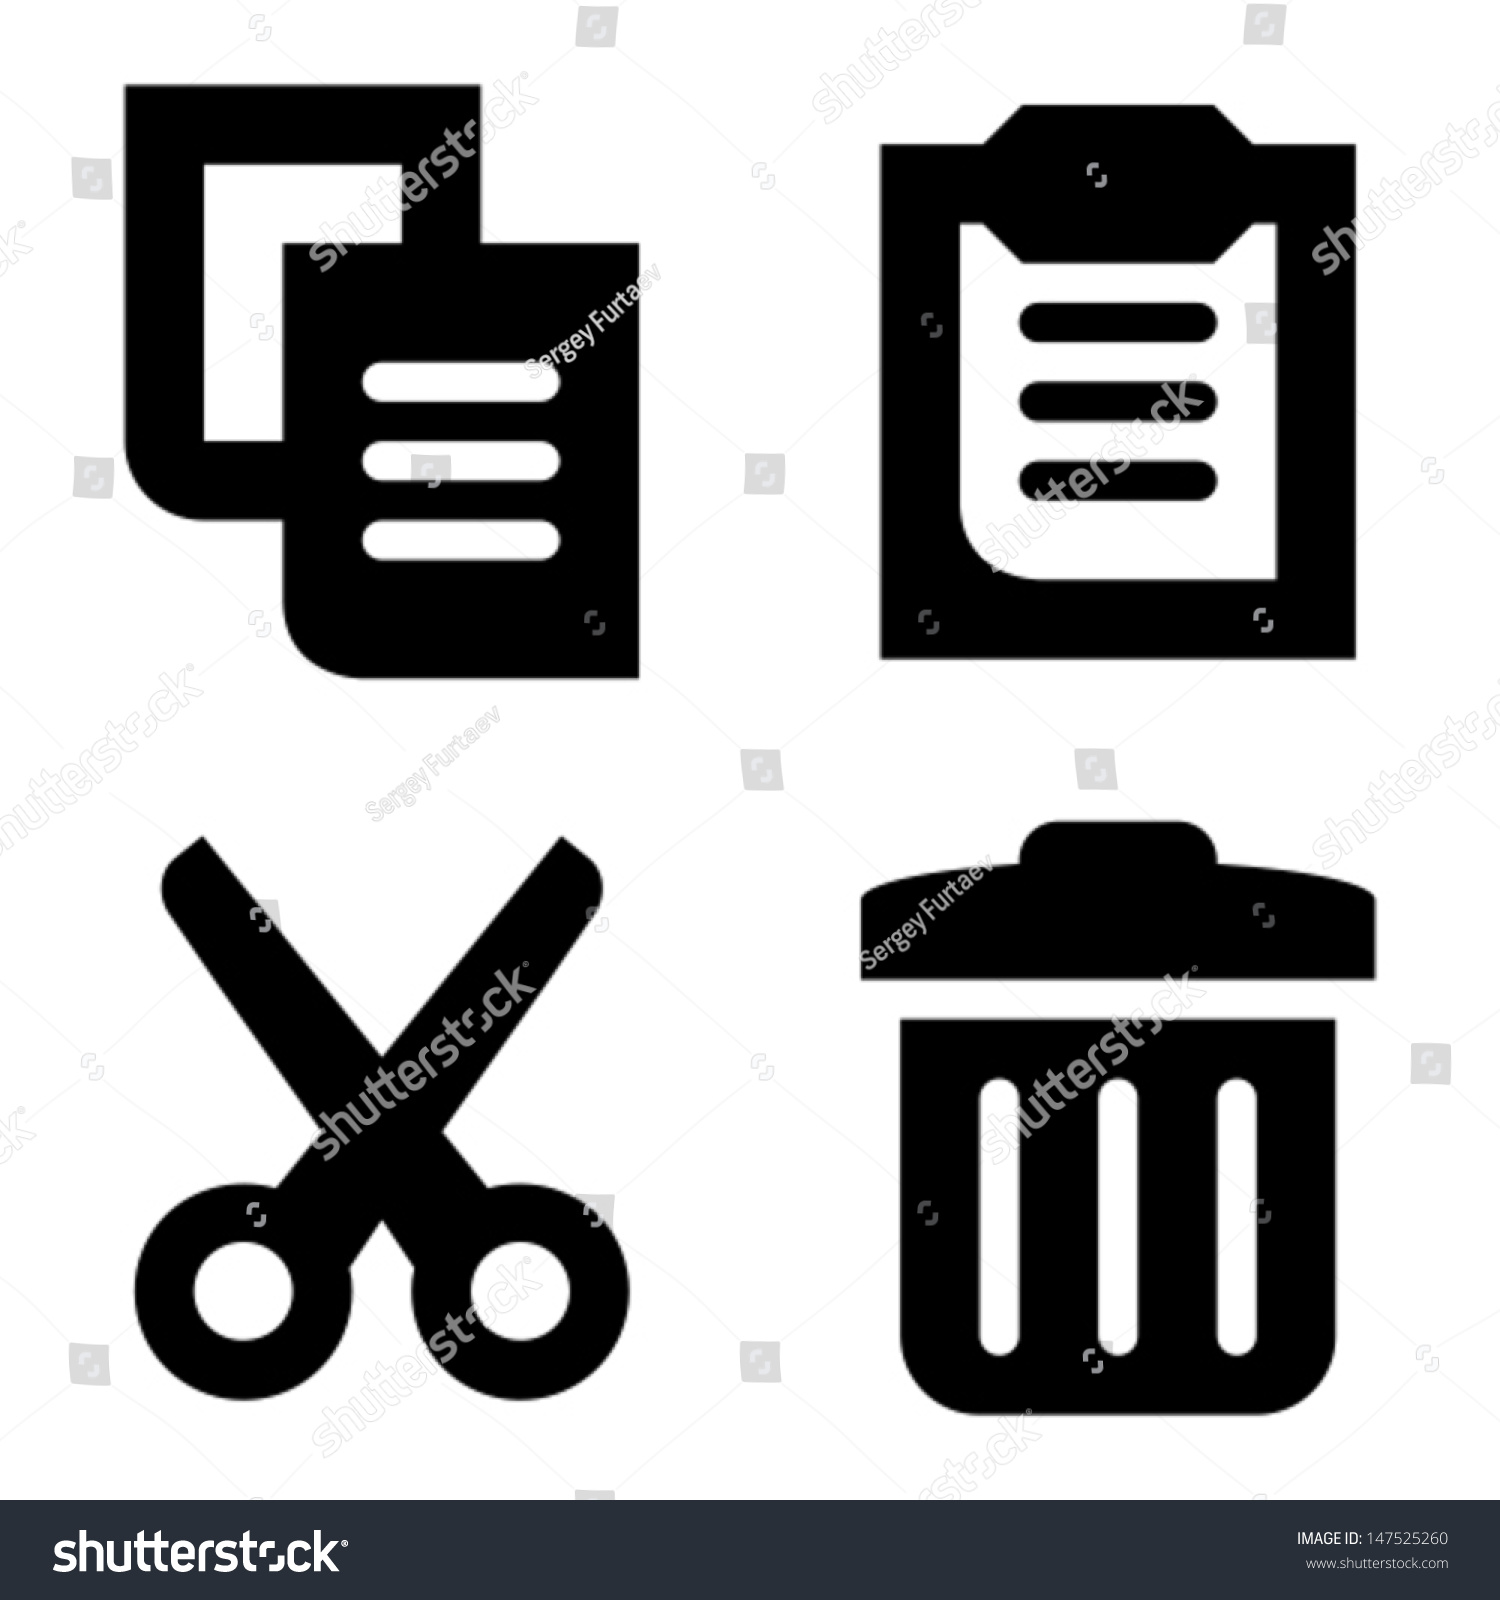 Copy Paste Cut Delete Icons Stock Vector 147525260 - Shutterstock